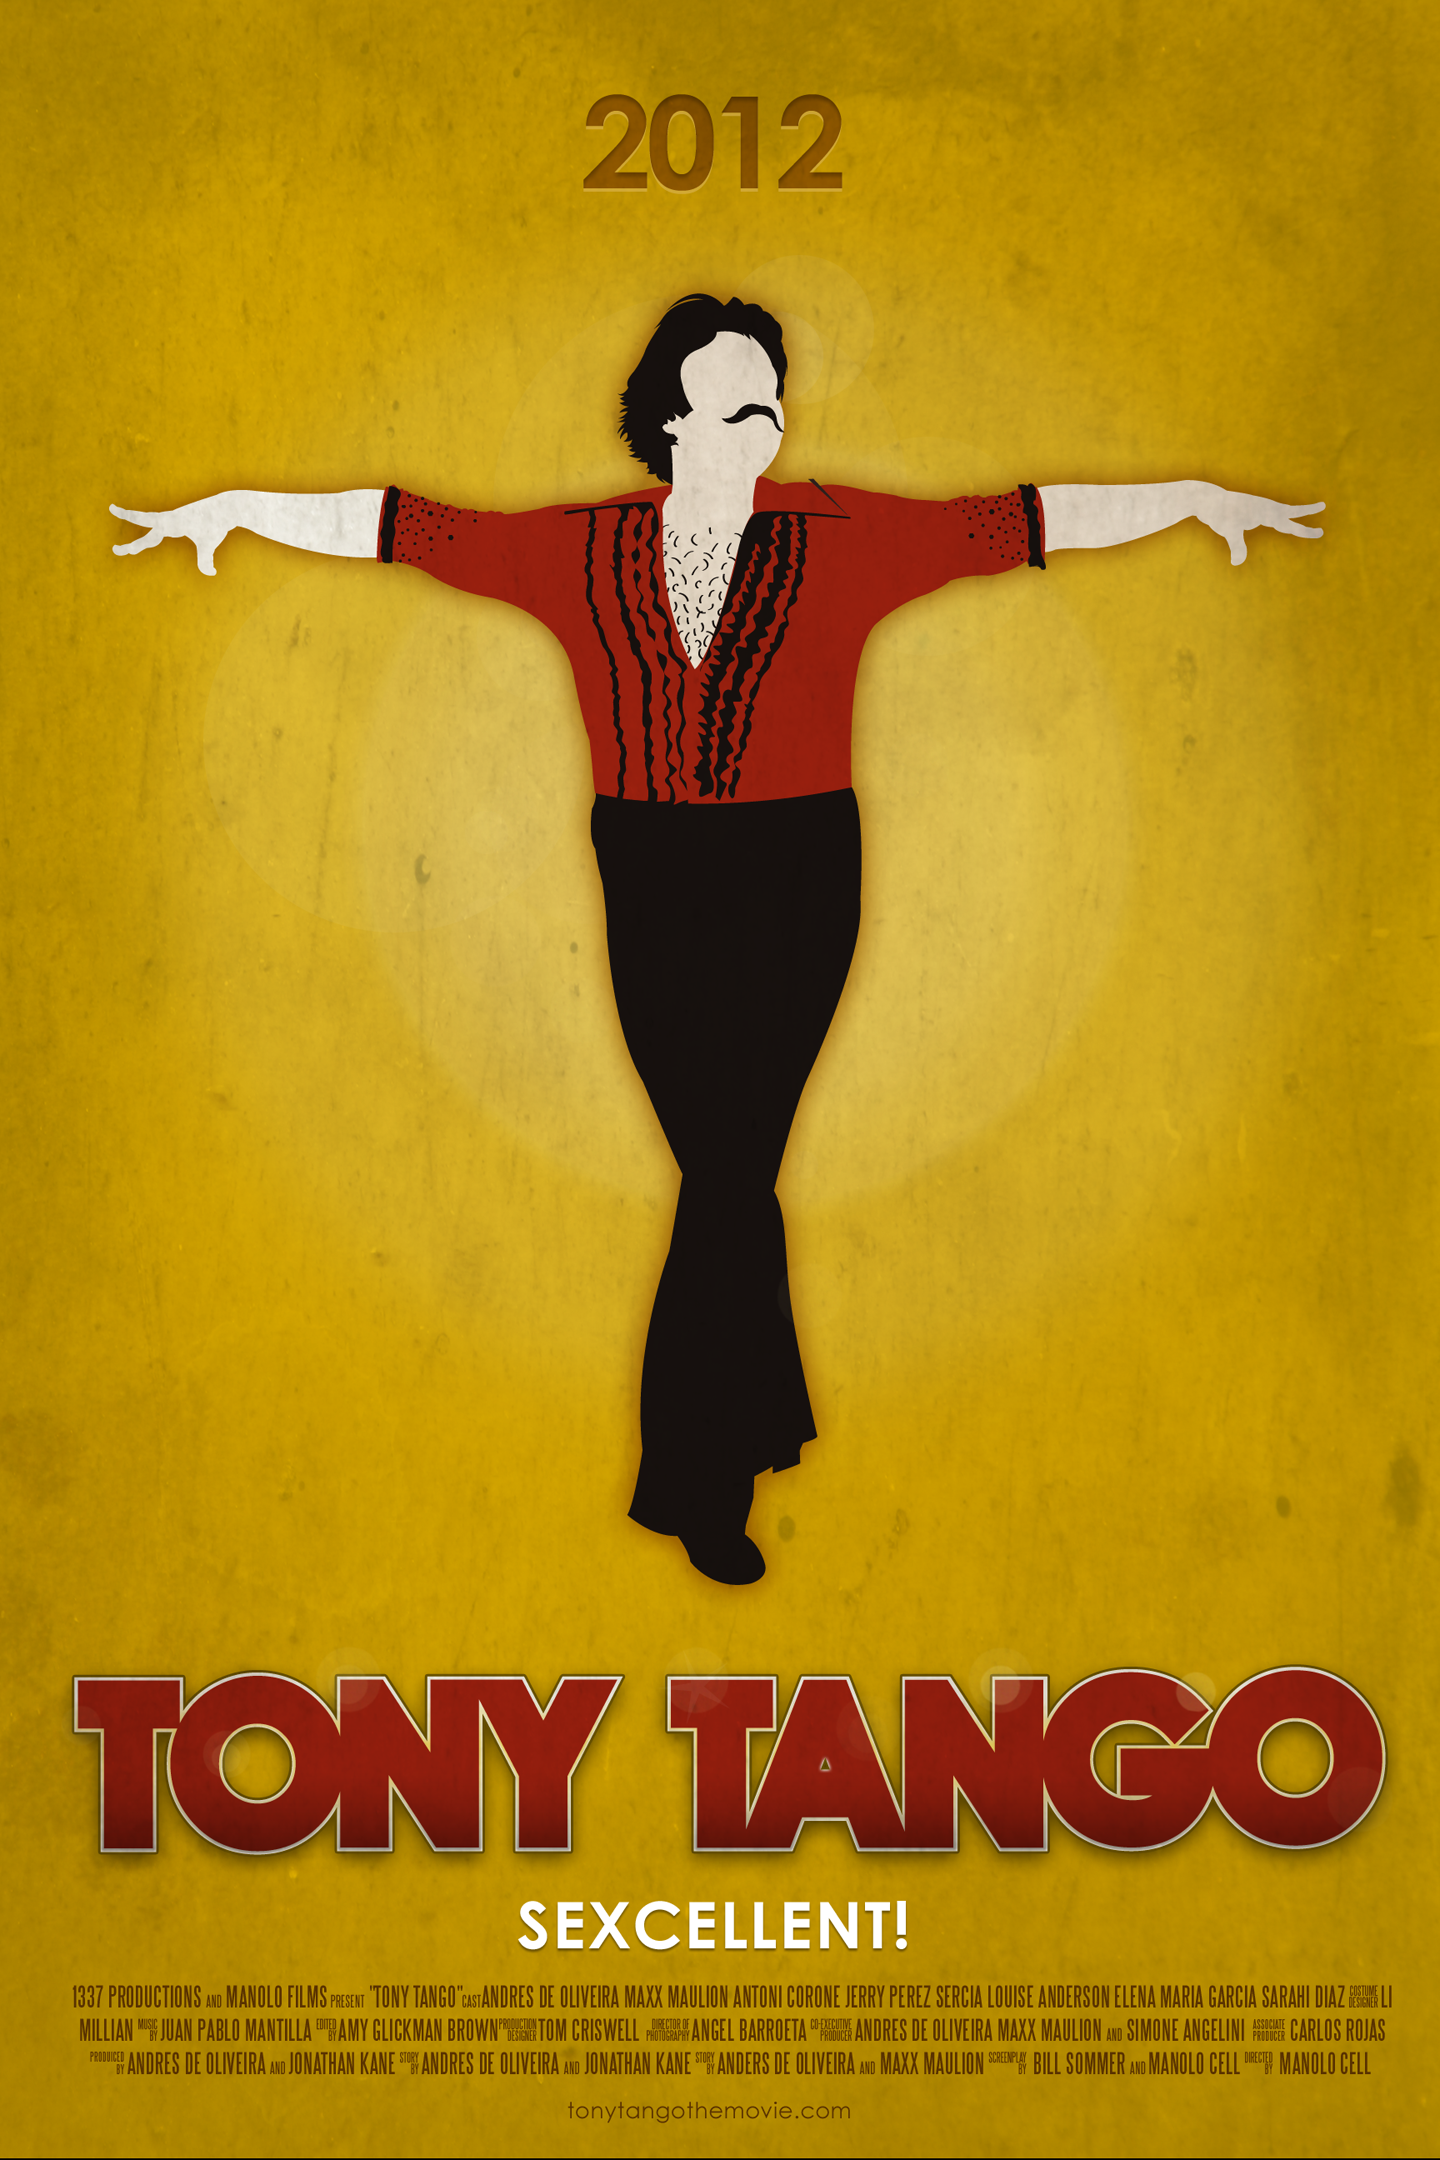 tony tango movie poster by derric character and mascot design